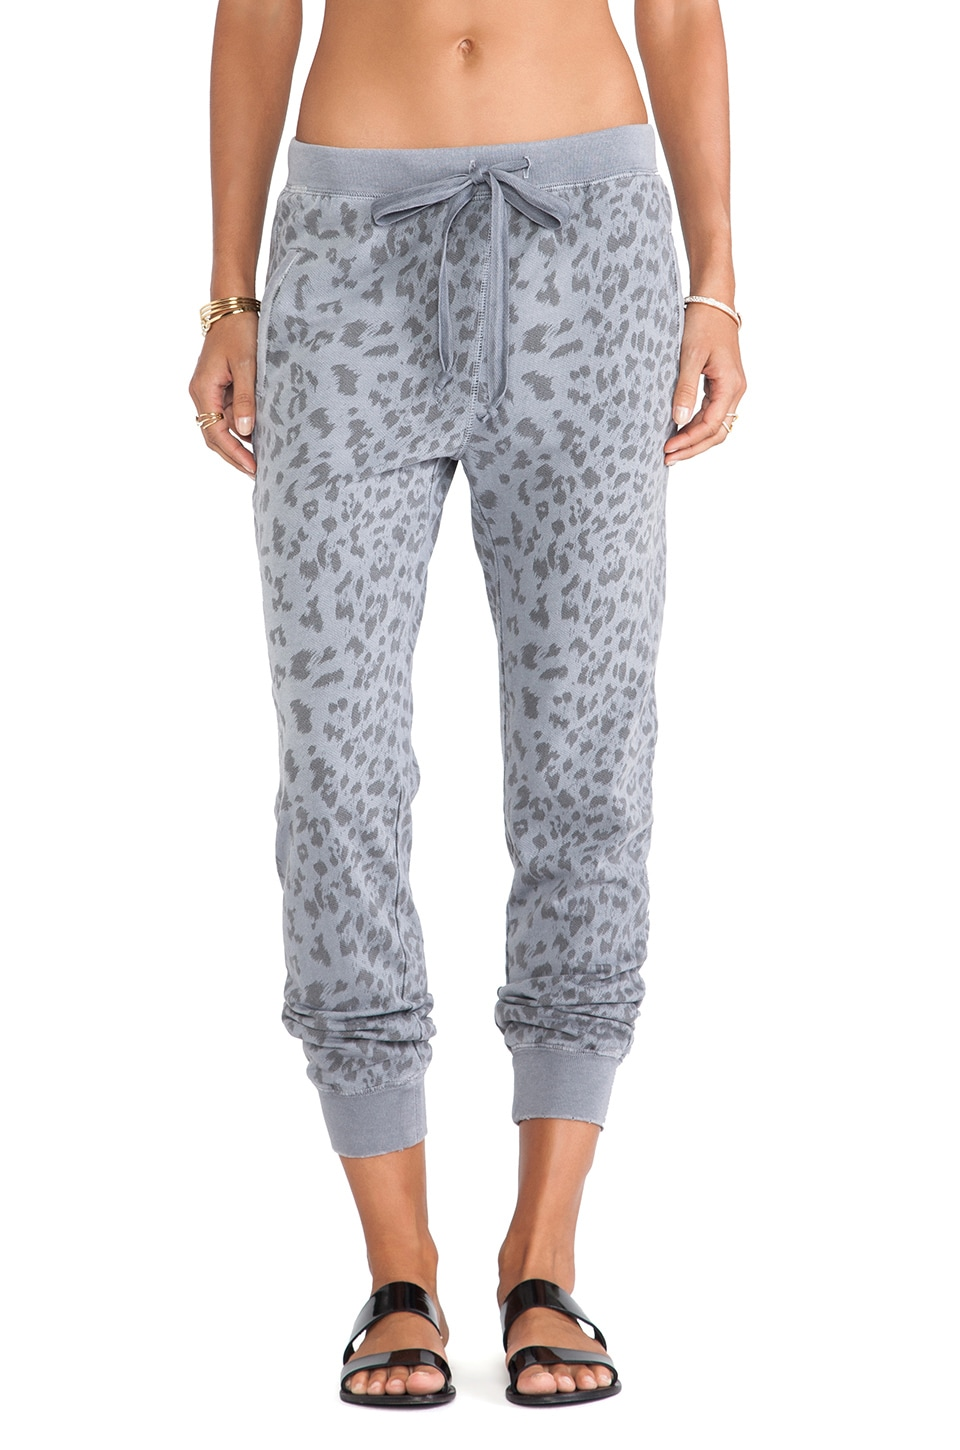 Current/Elliott The Slim Vintage Sweatpant in Washed Black Leopard